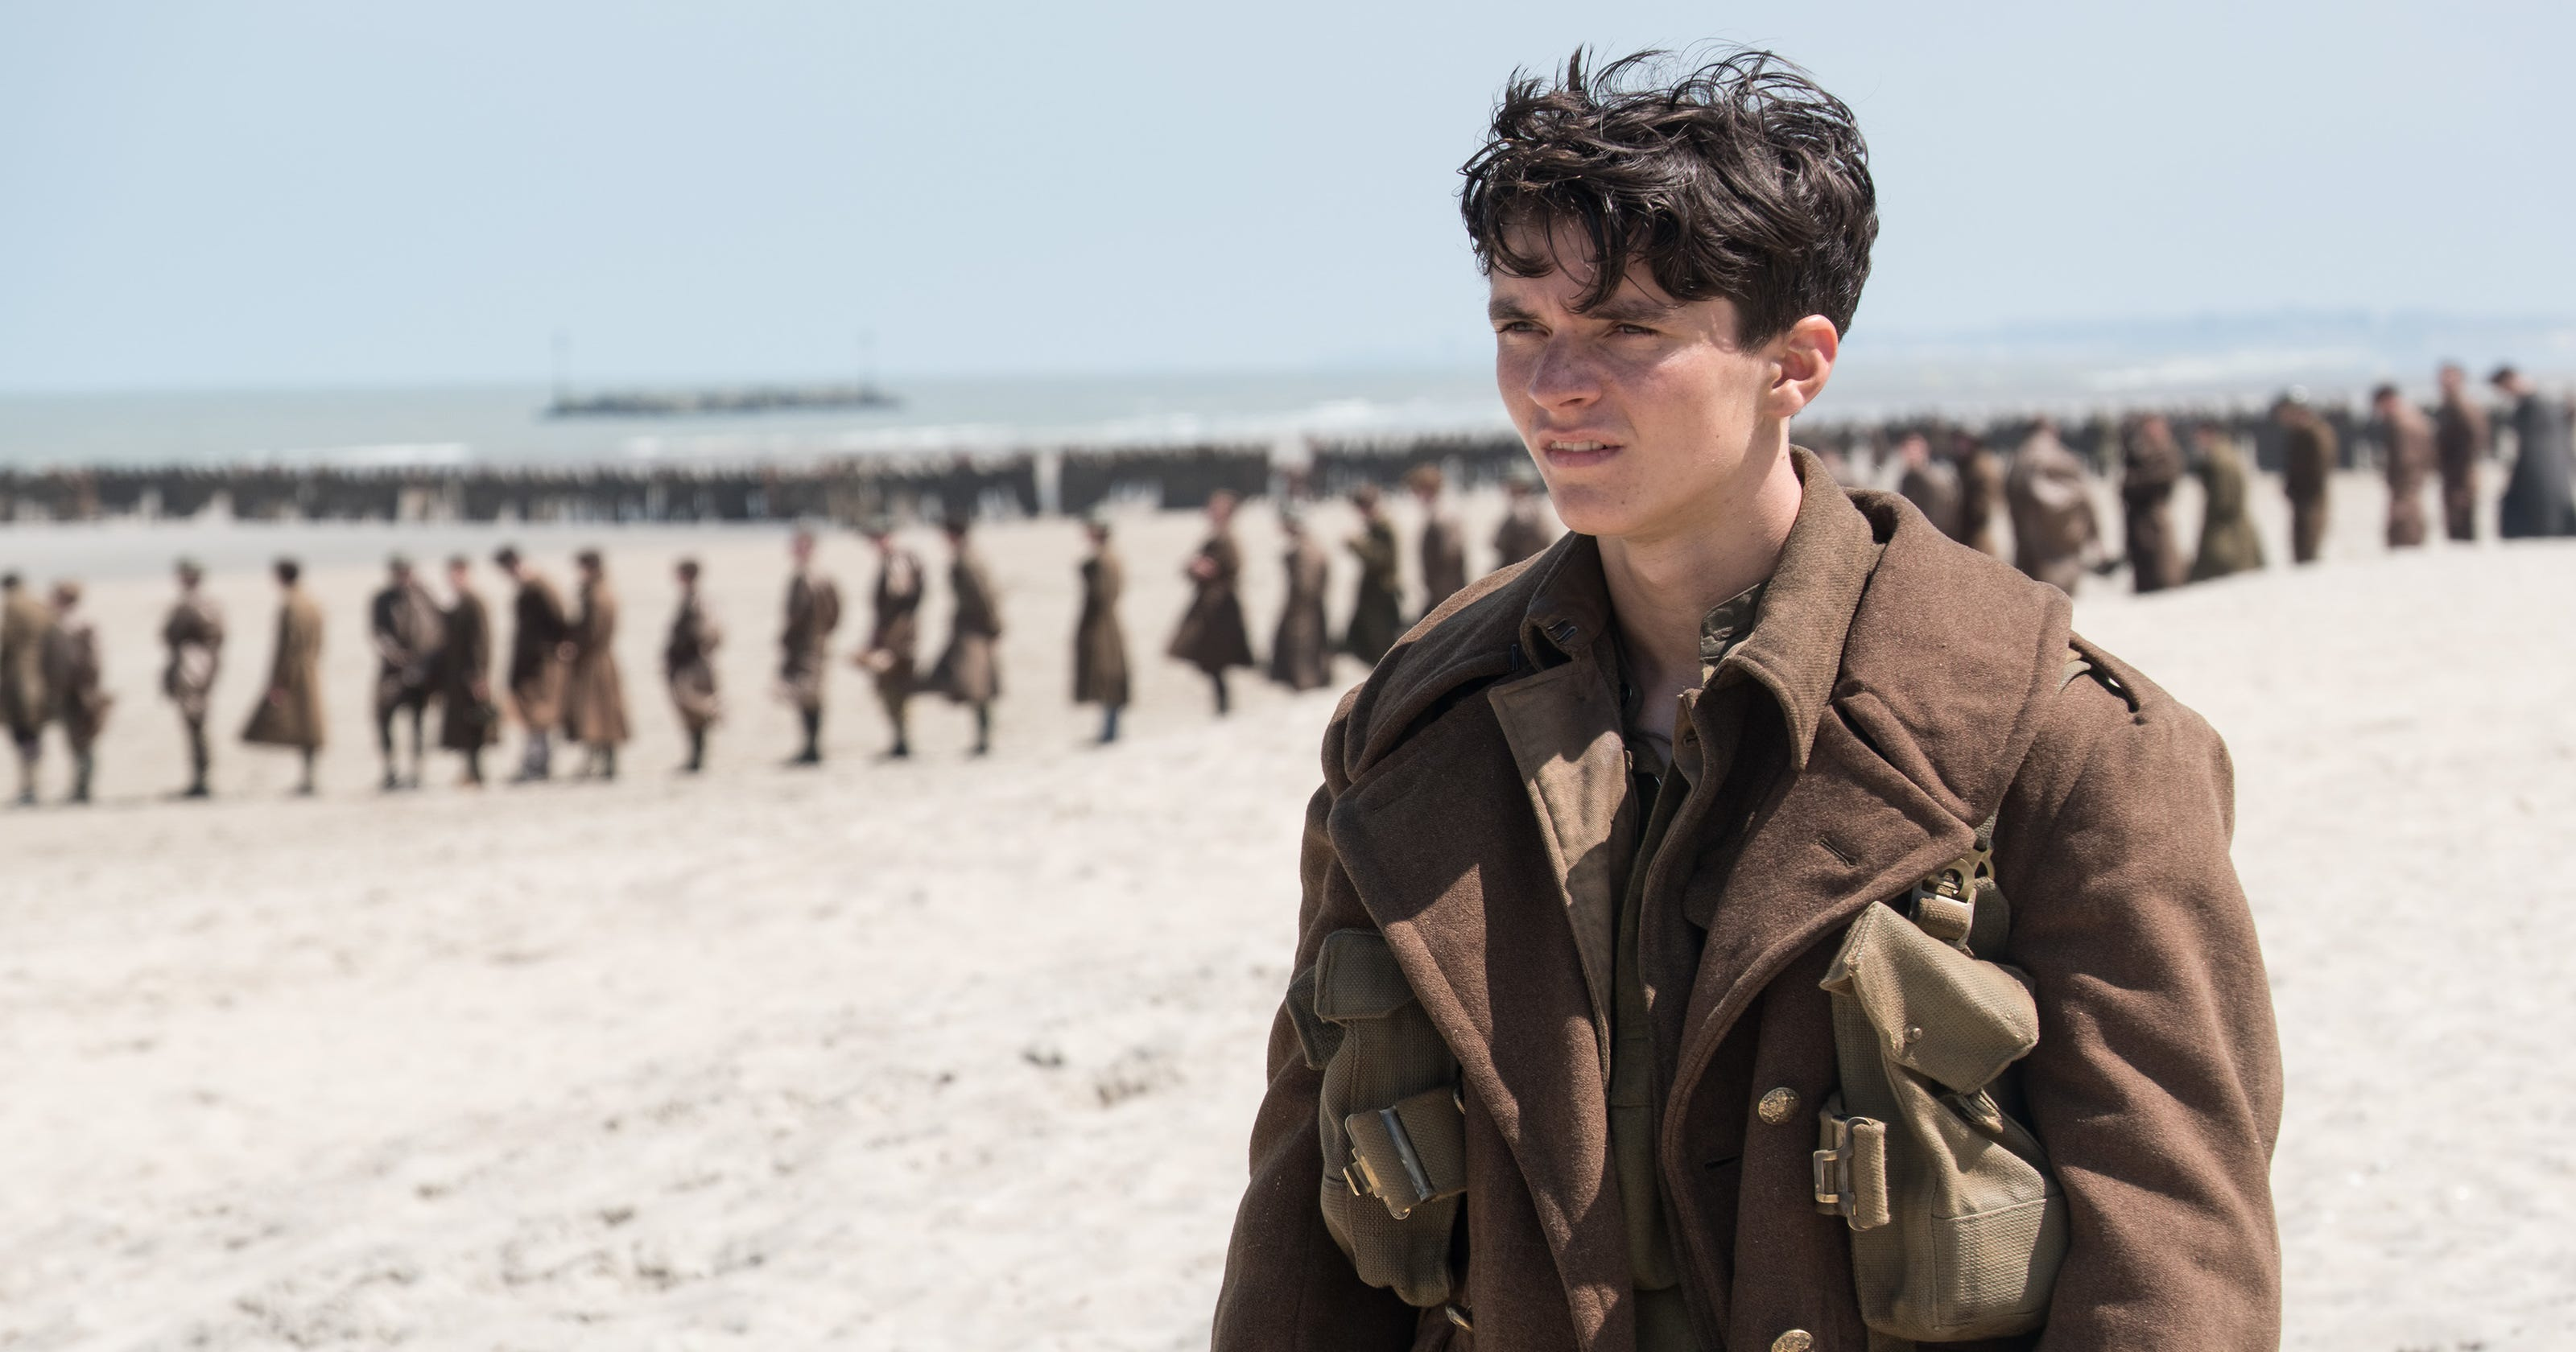 Review: Nolan's 'Dunkirk' echoes other great war movies